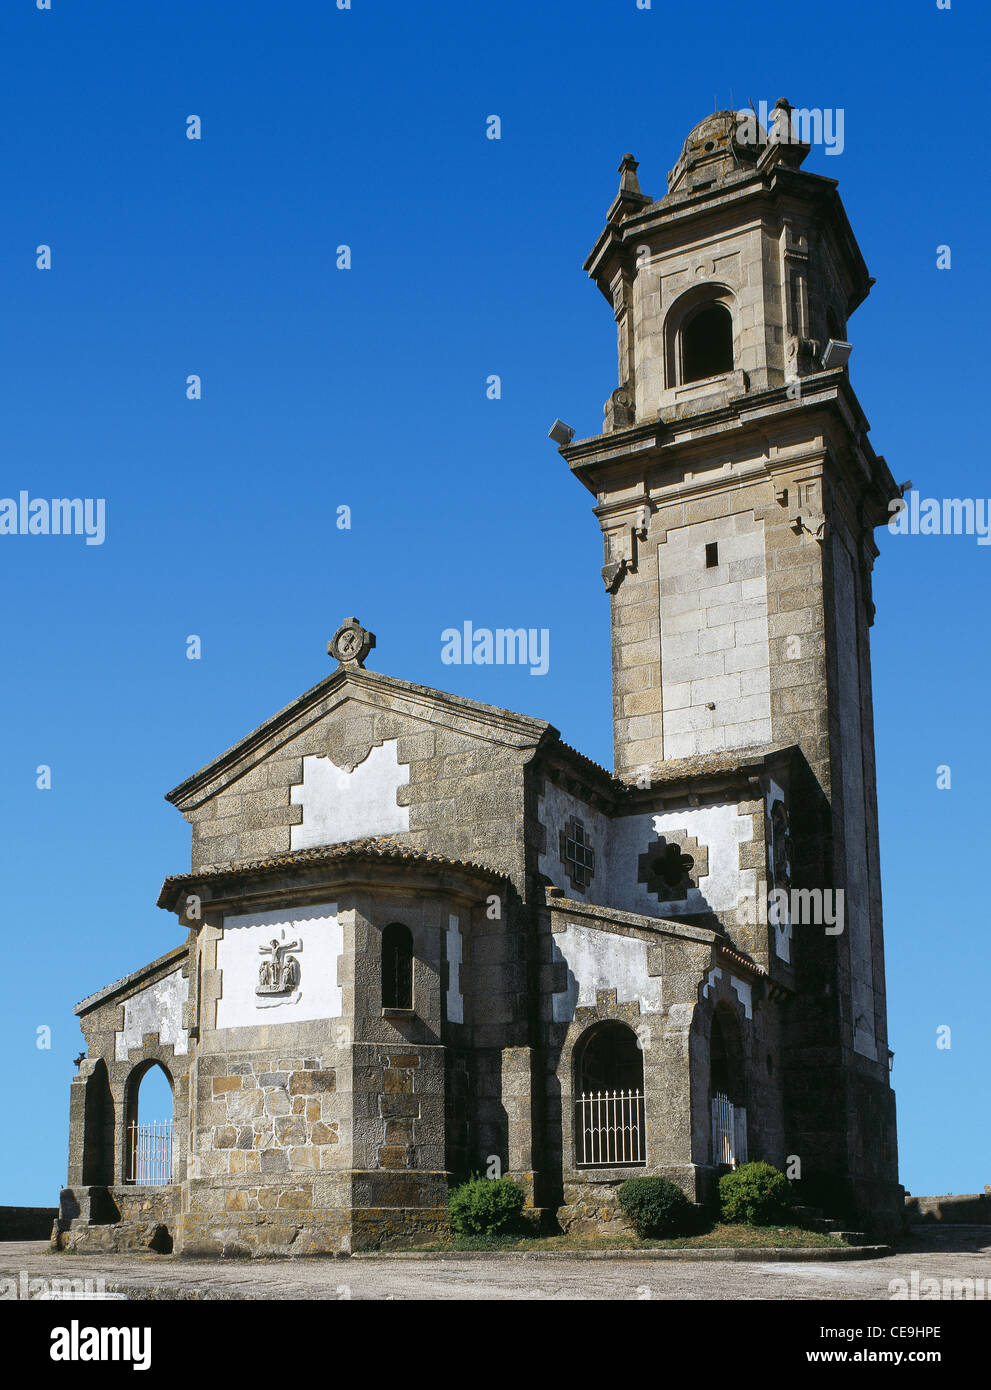 Spain. Vigo. Shrine of Our Lady of Guidance. Built in 1951 by Manuel Gomez Roman. Exterior. - Stock Image